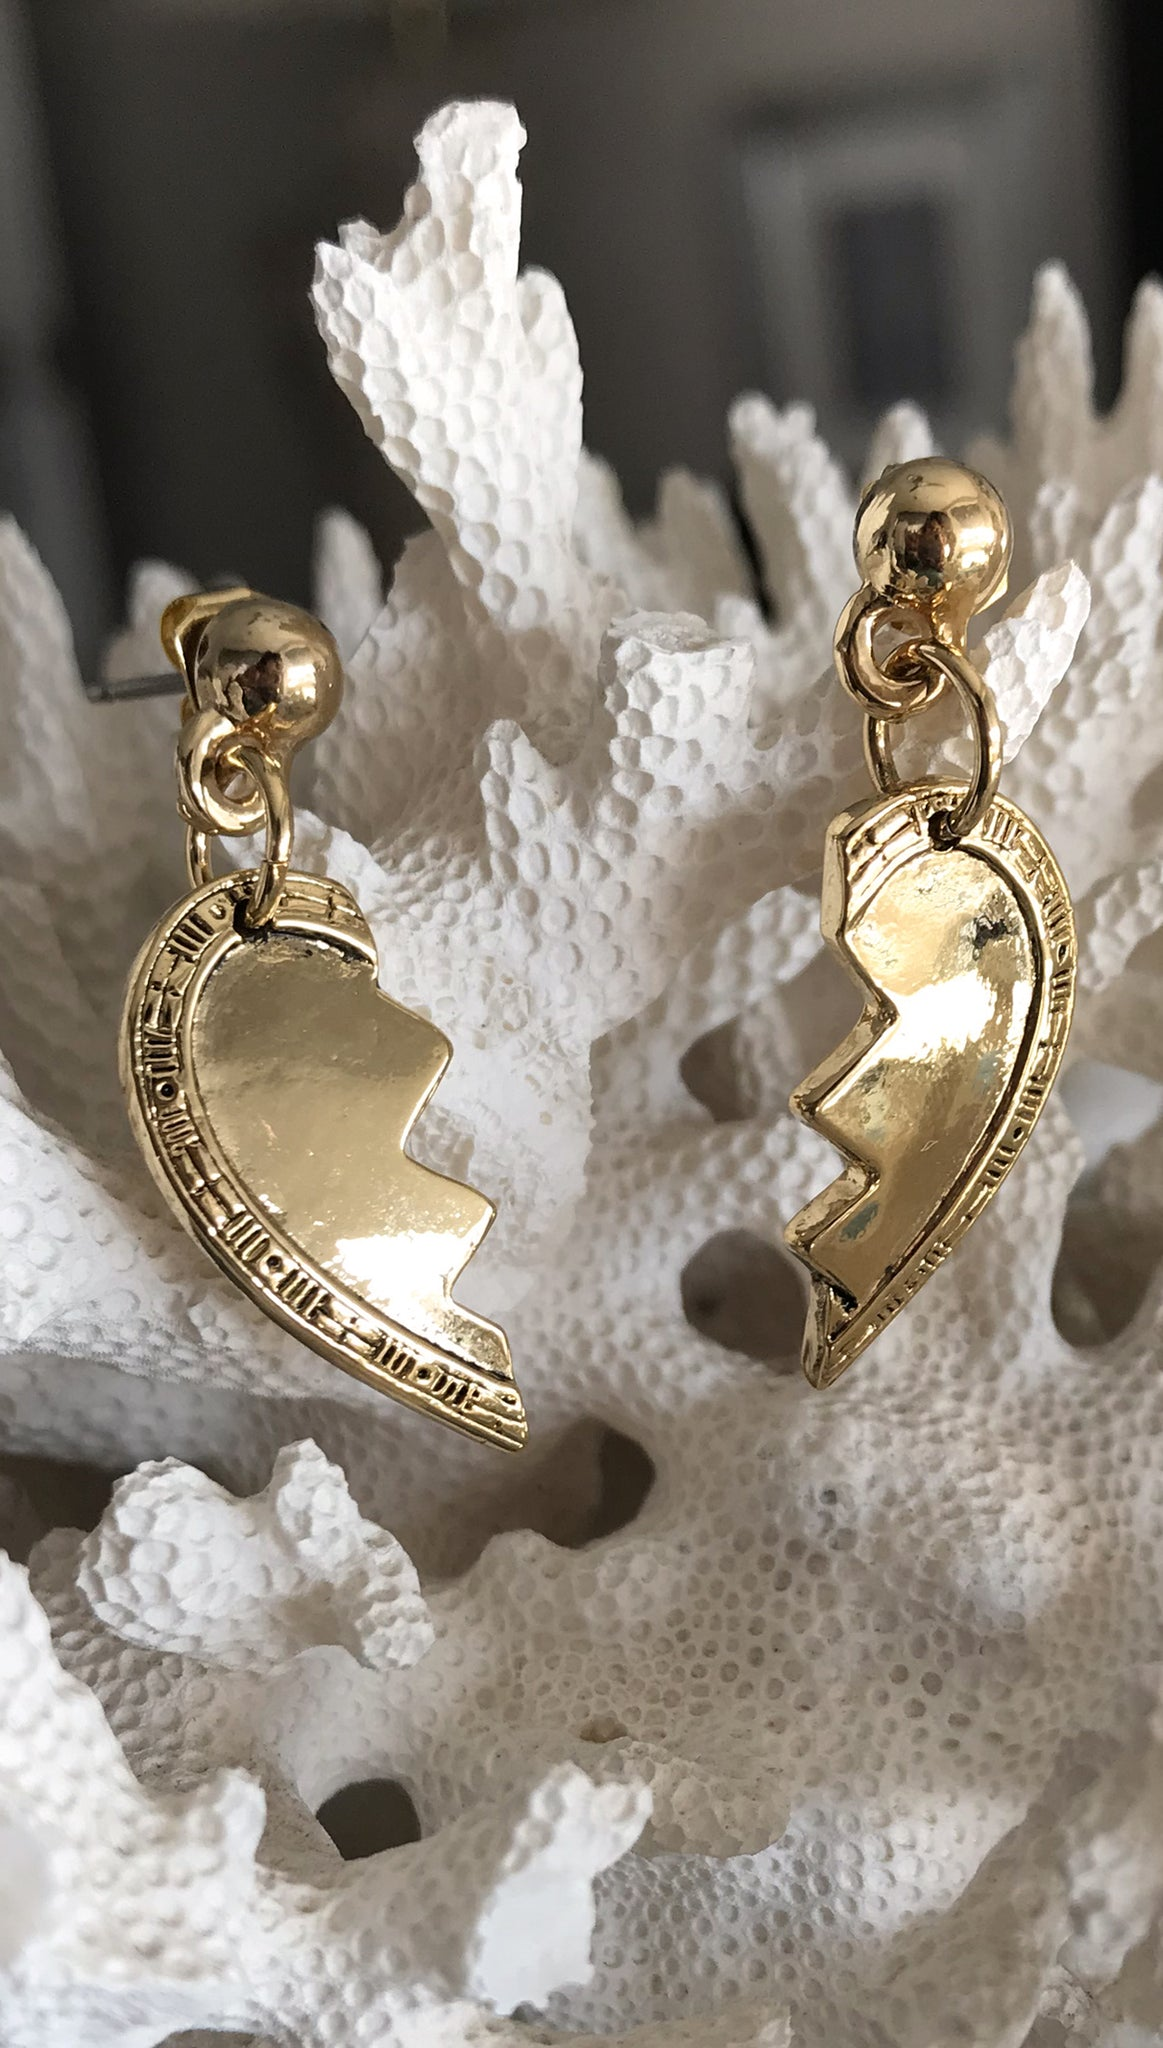 Best Friend Broken Heart Earrings by Vanessa Mooney